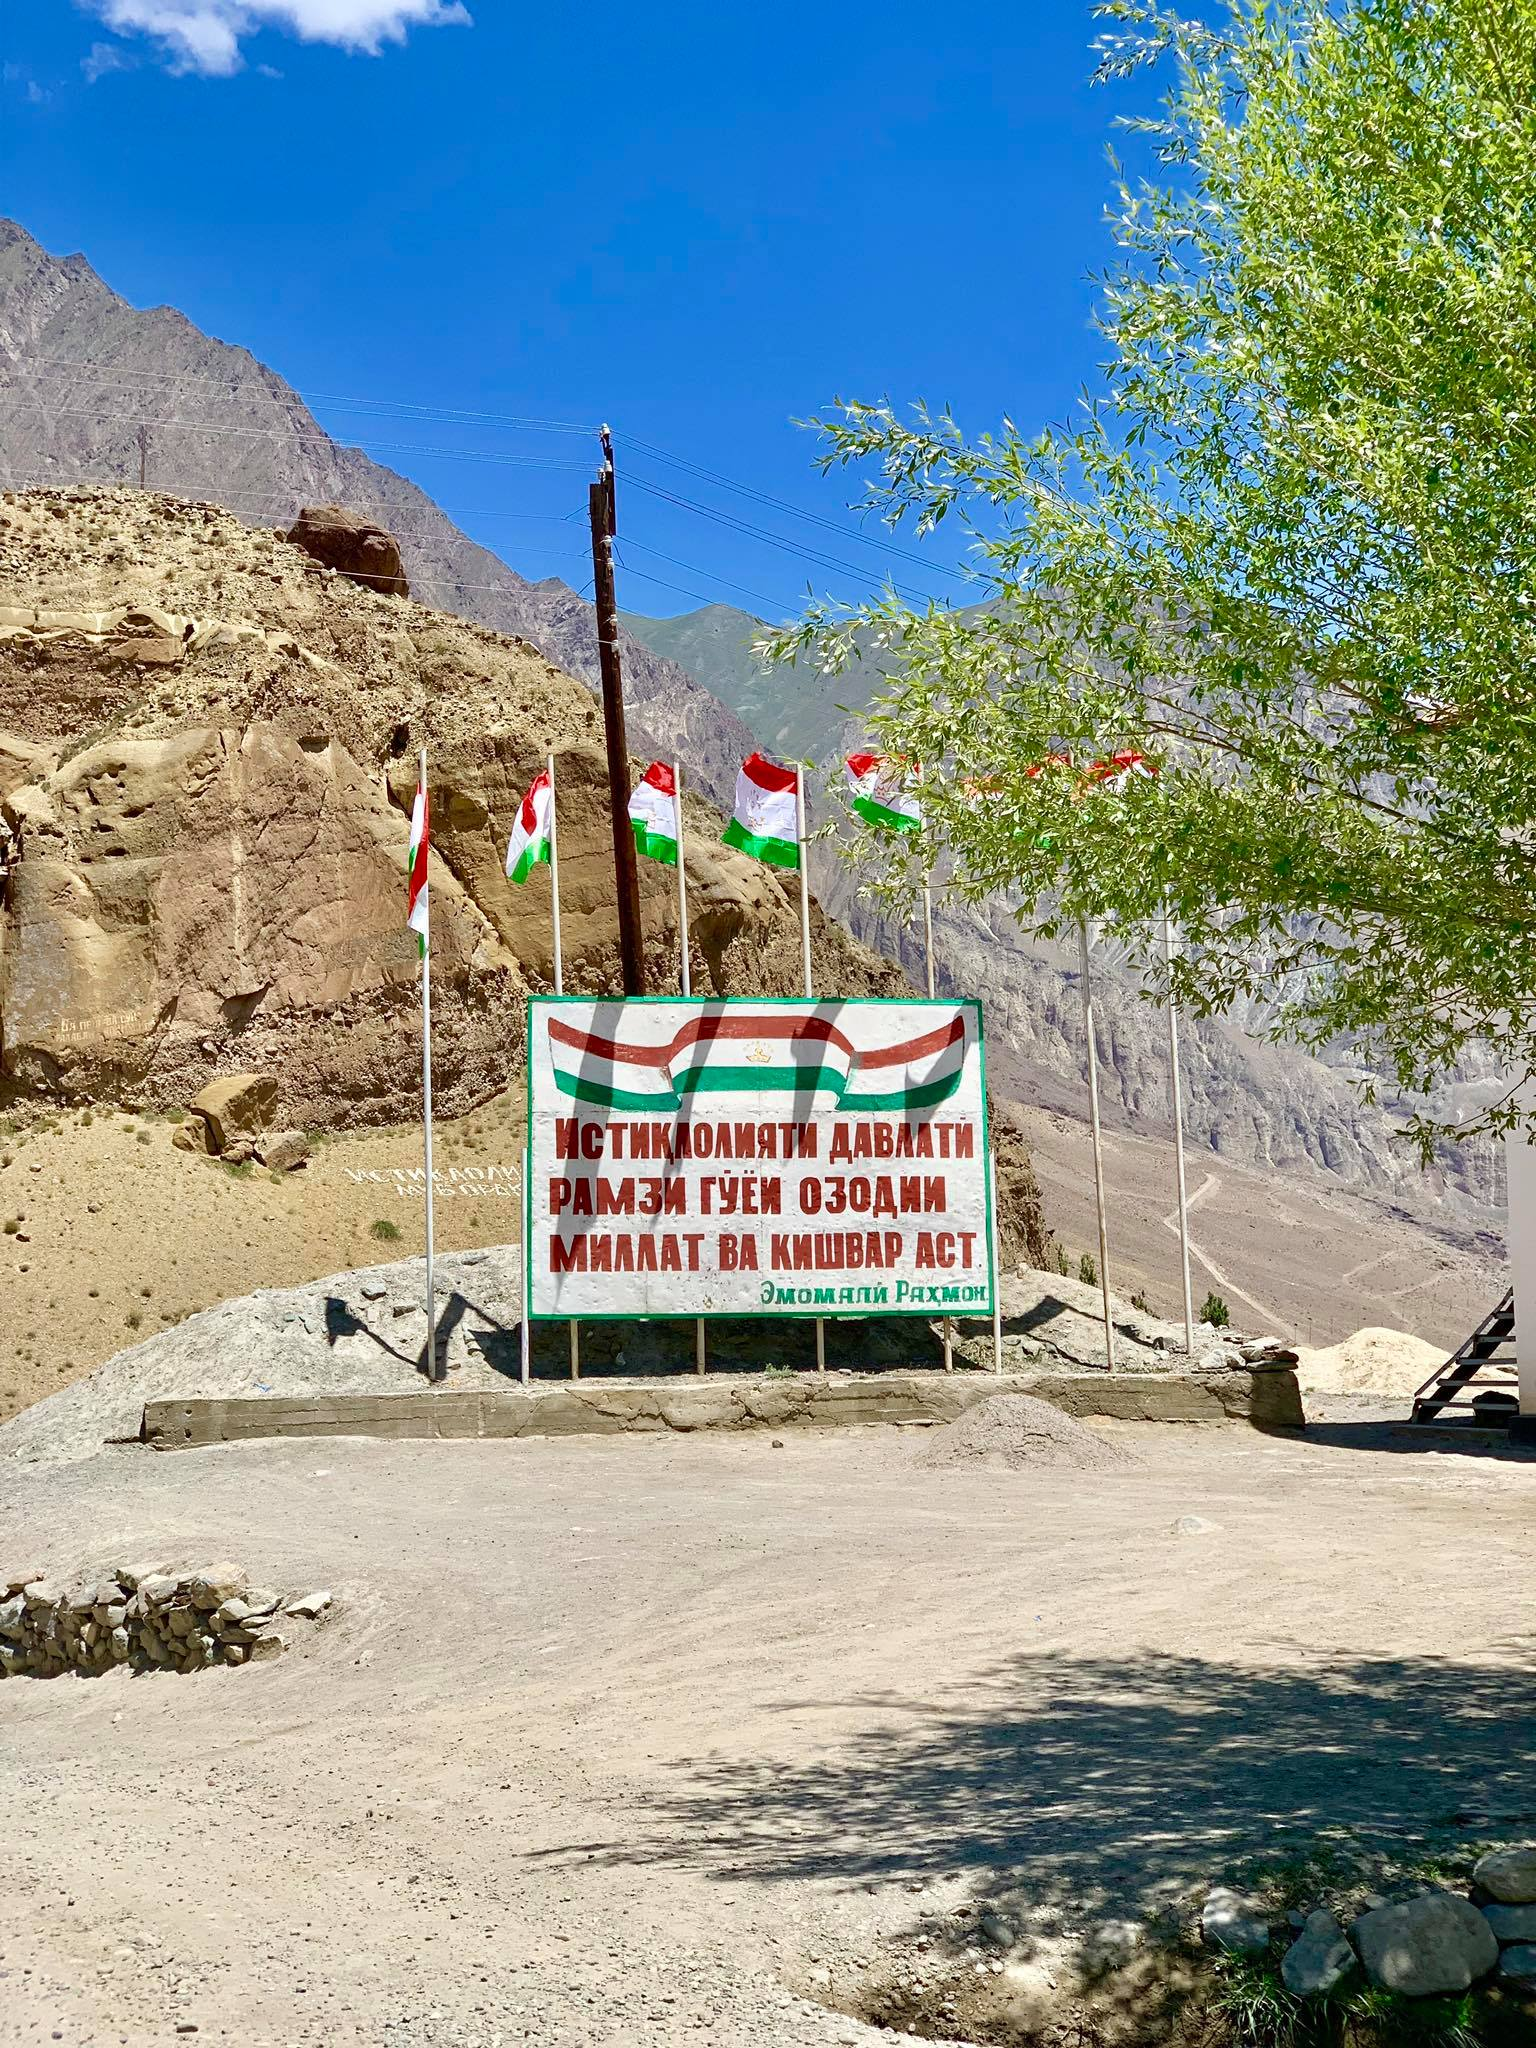 13 Things You Should Not Miss When You Travel the Pamir Highway in Tajikistan3